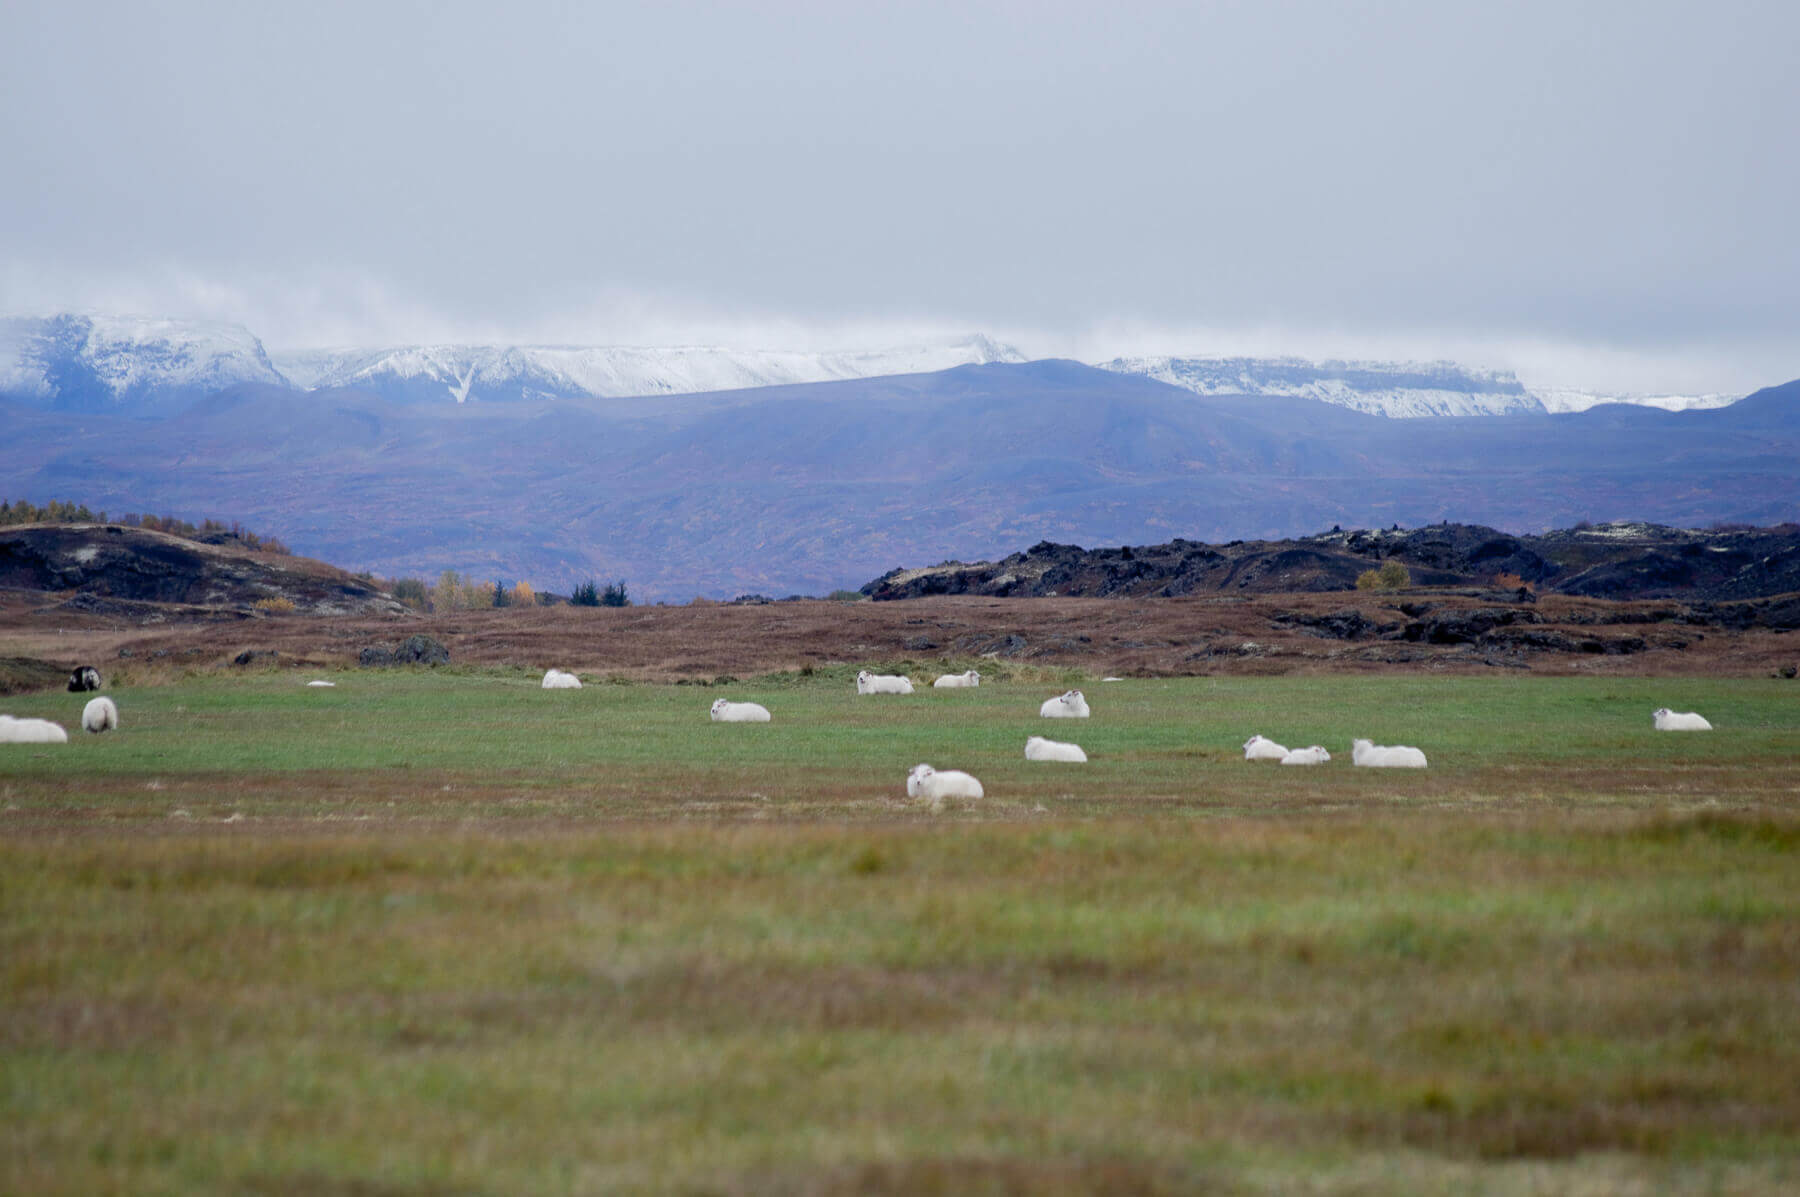 A herd of Icelandic Sheep in a big field